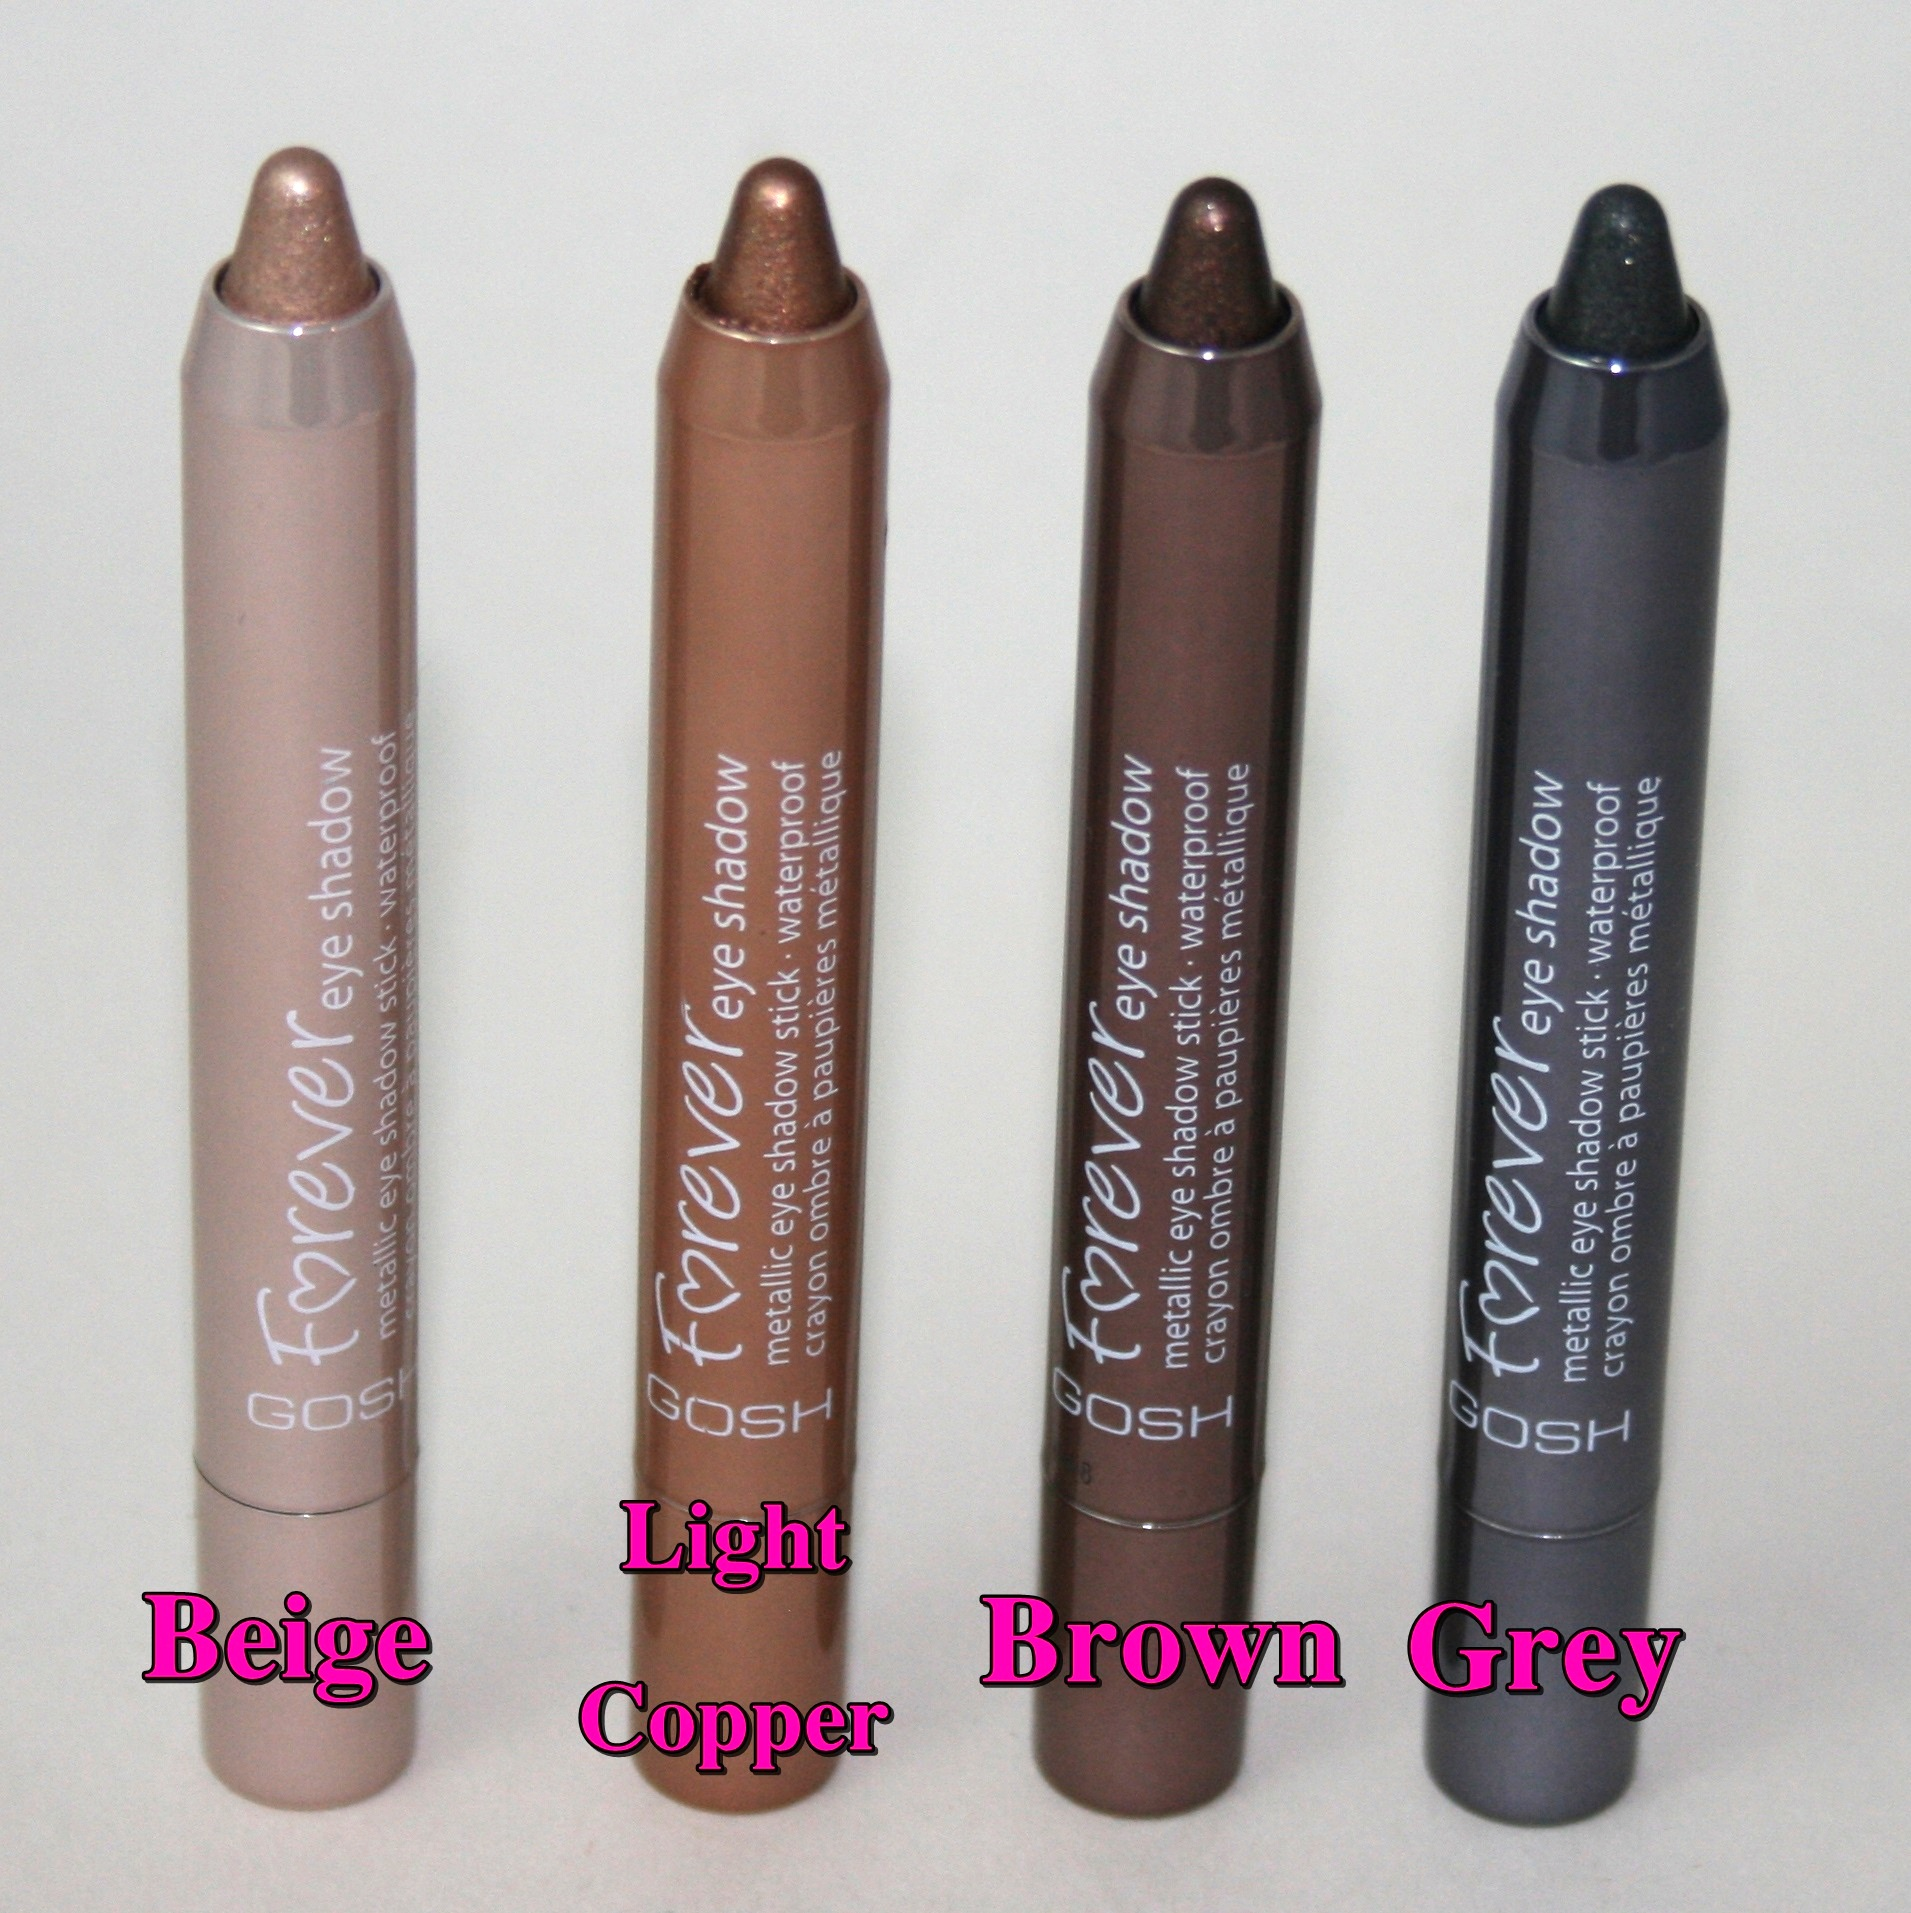 Gosh Forever Eyeshadows in Beige, Light Copper, Brown and Grey